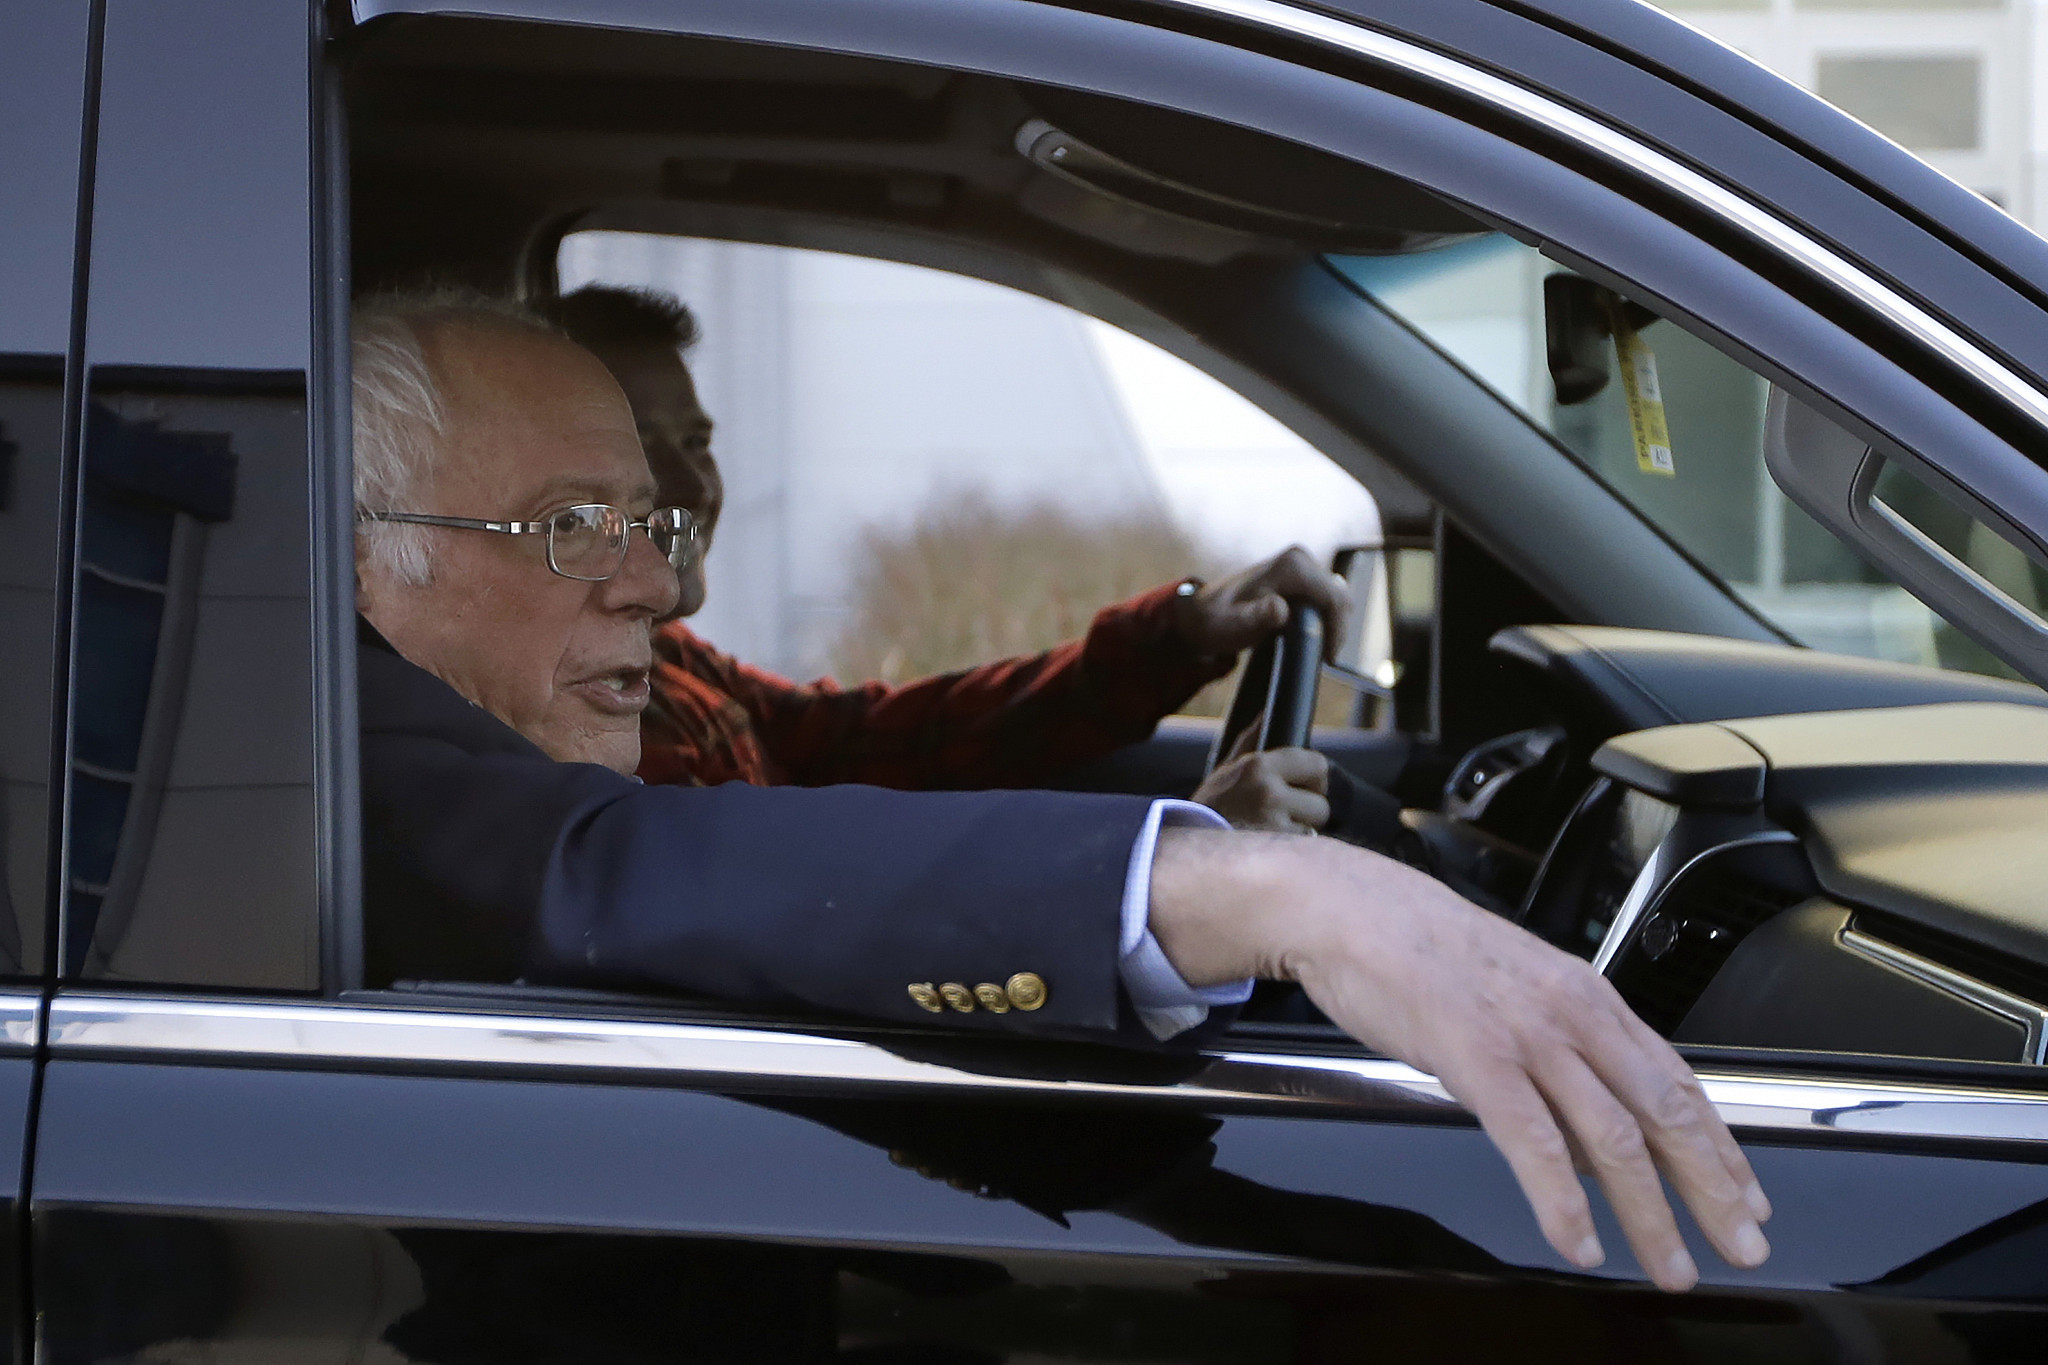 Sanders returns home but will 'change the nature of campaign'